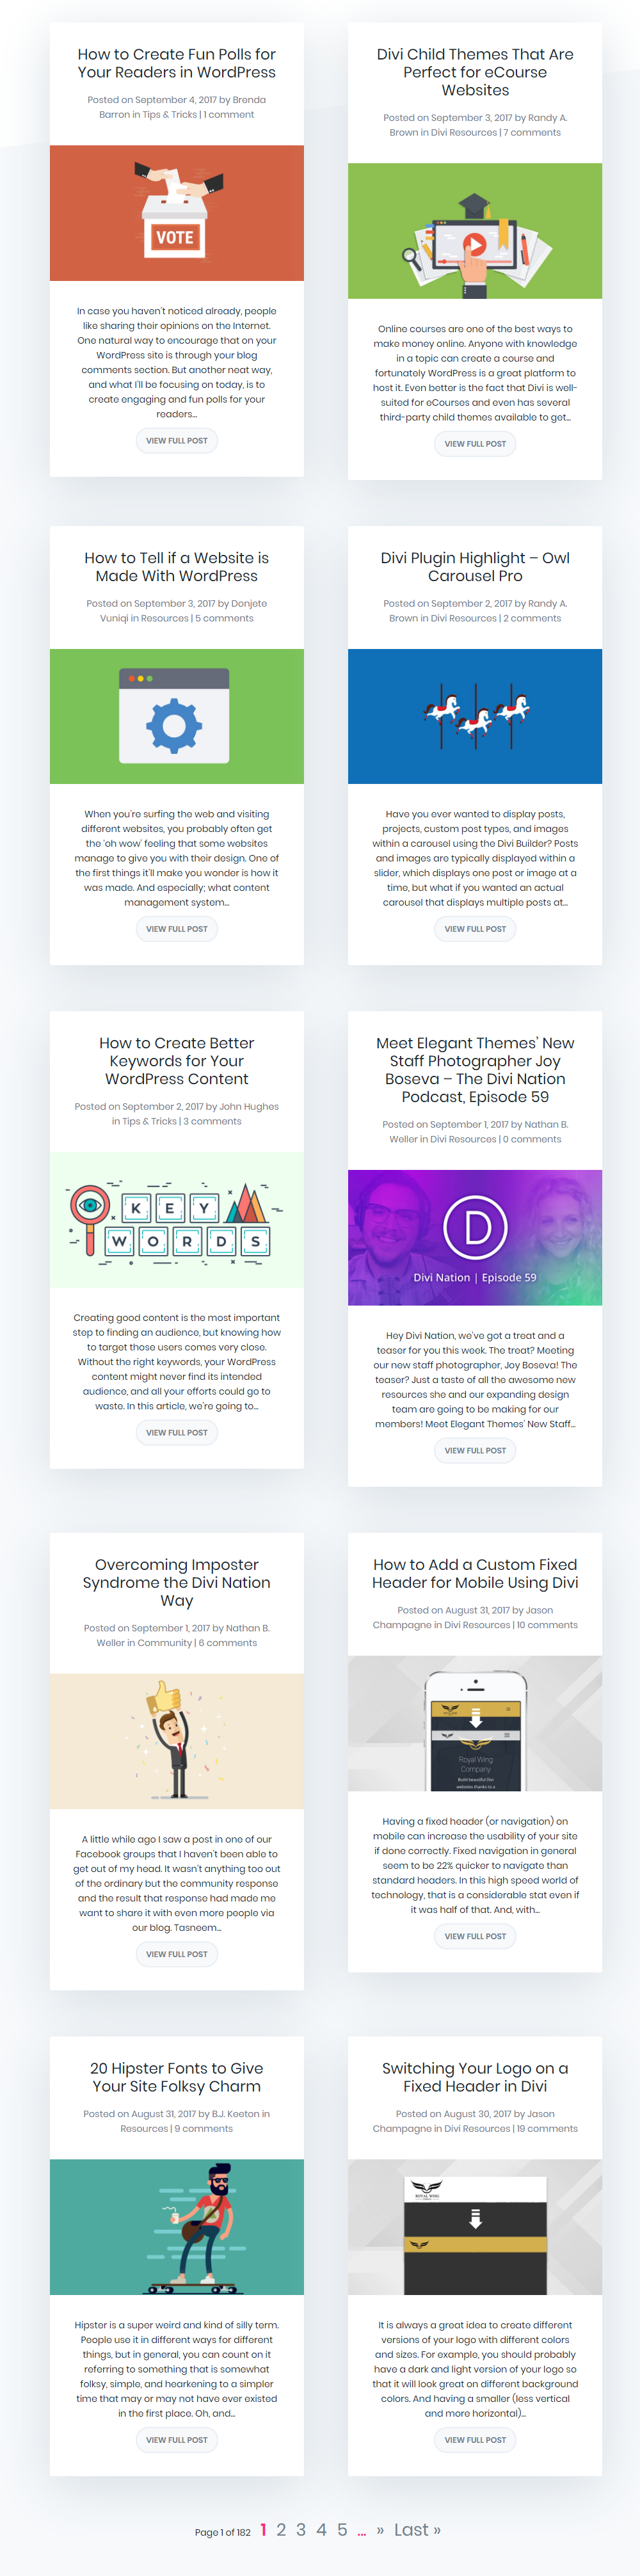 Divi 3 0 Review 2019  Is it the Best WordPress Theme Ever?